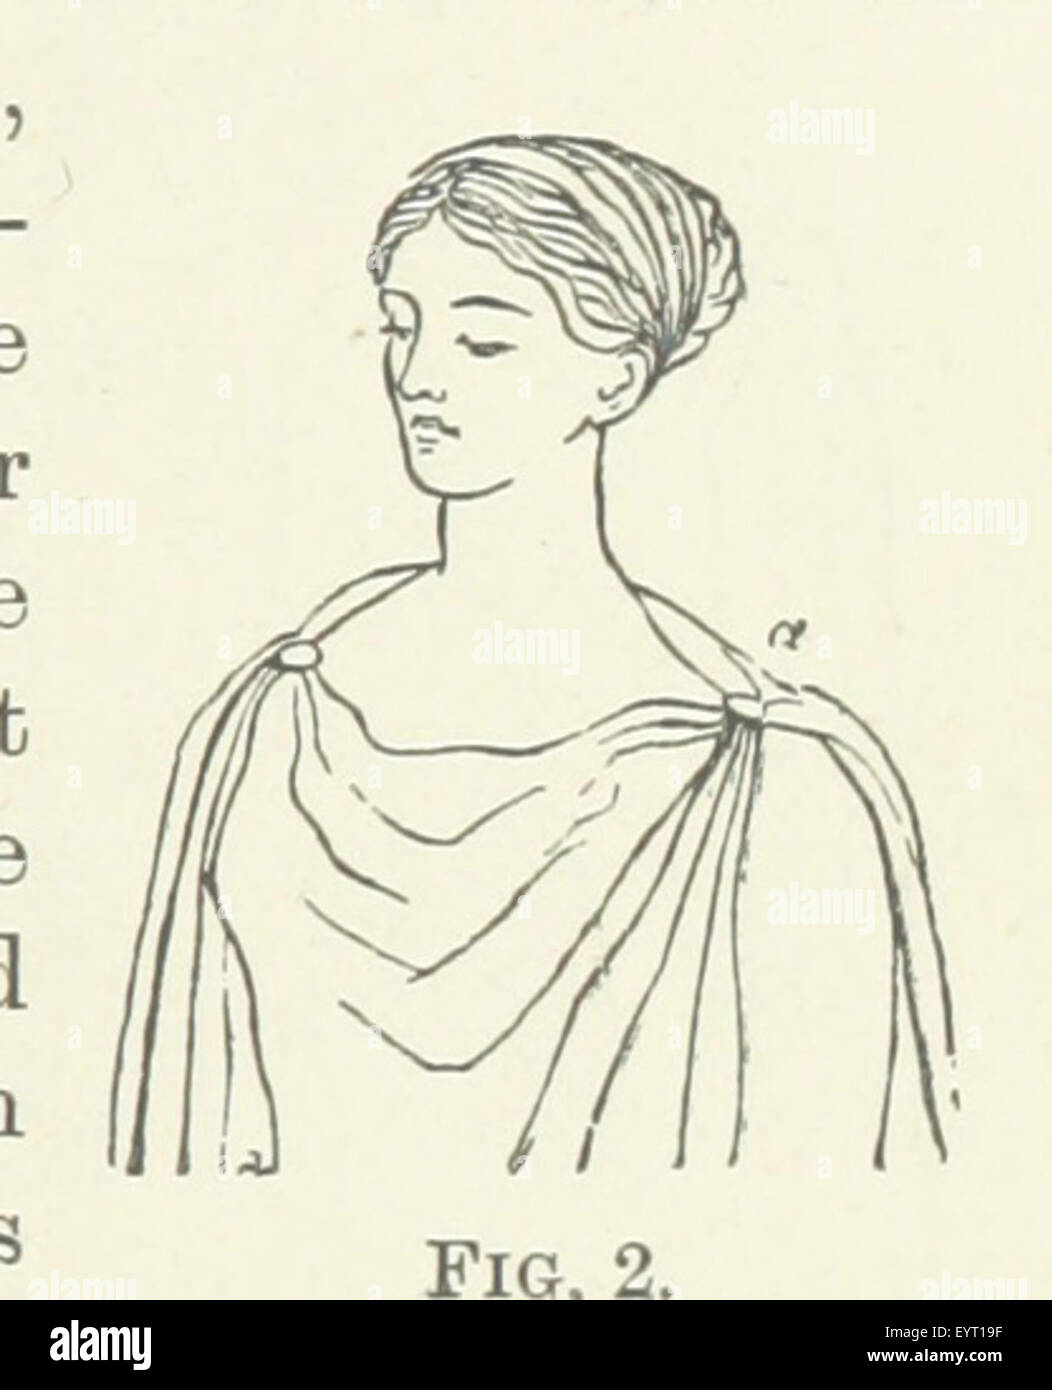 Image taken from page 229 of 'Papers literary, scientific, &c. ... Edited by Sidney Colvin ... and J. A. - Stock Image